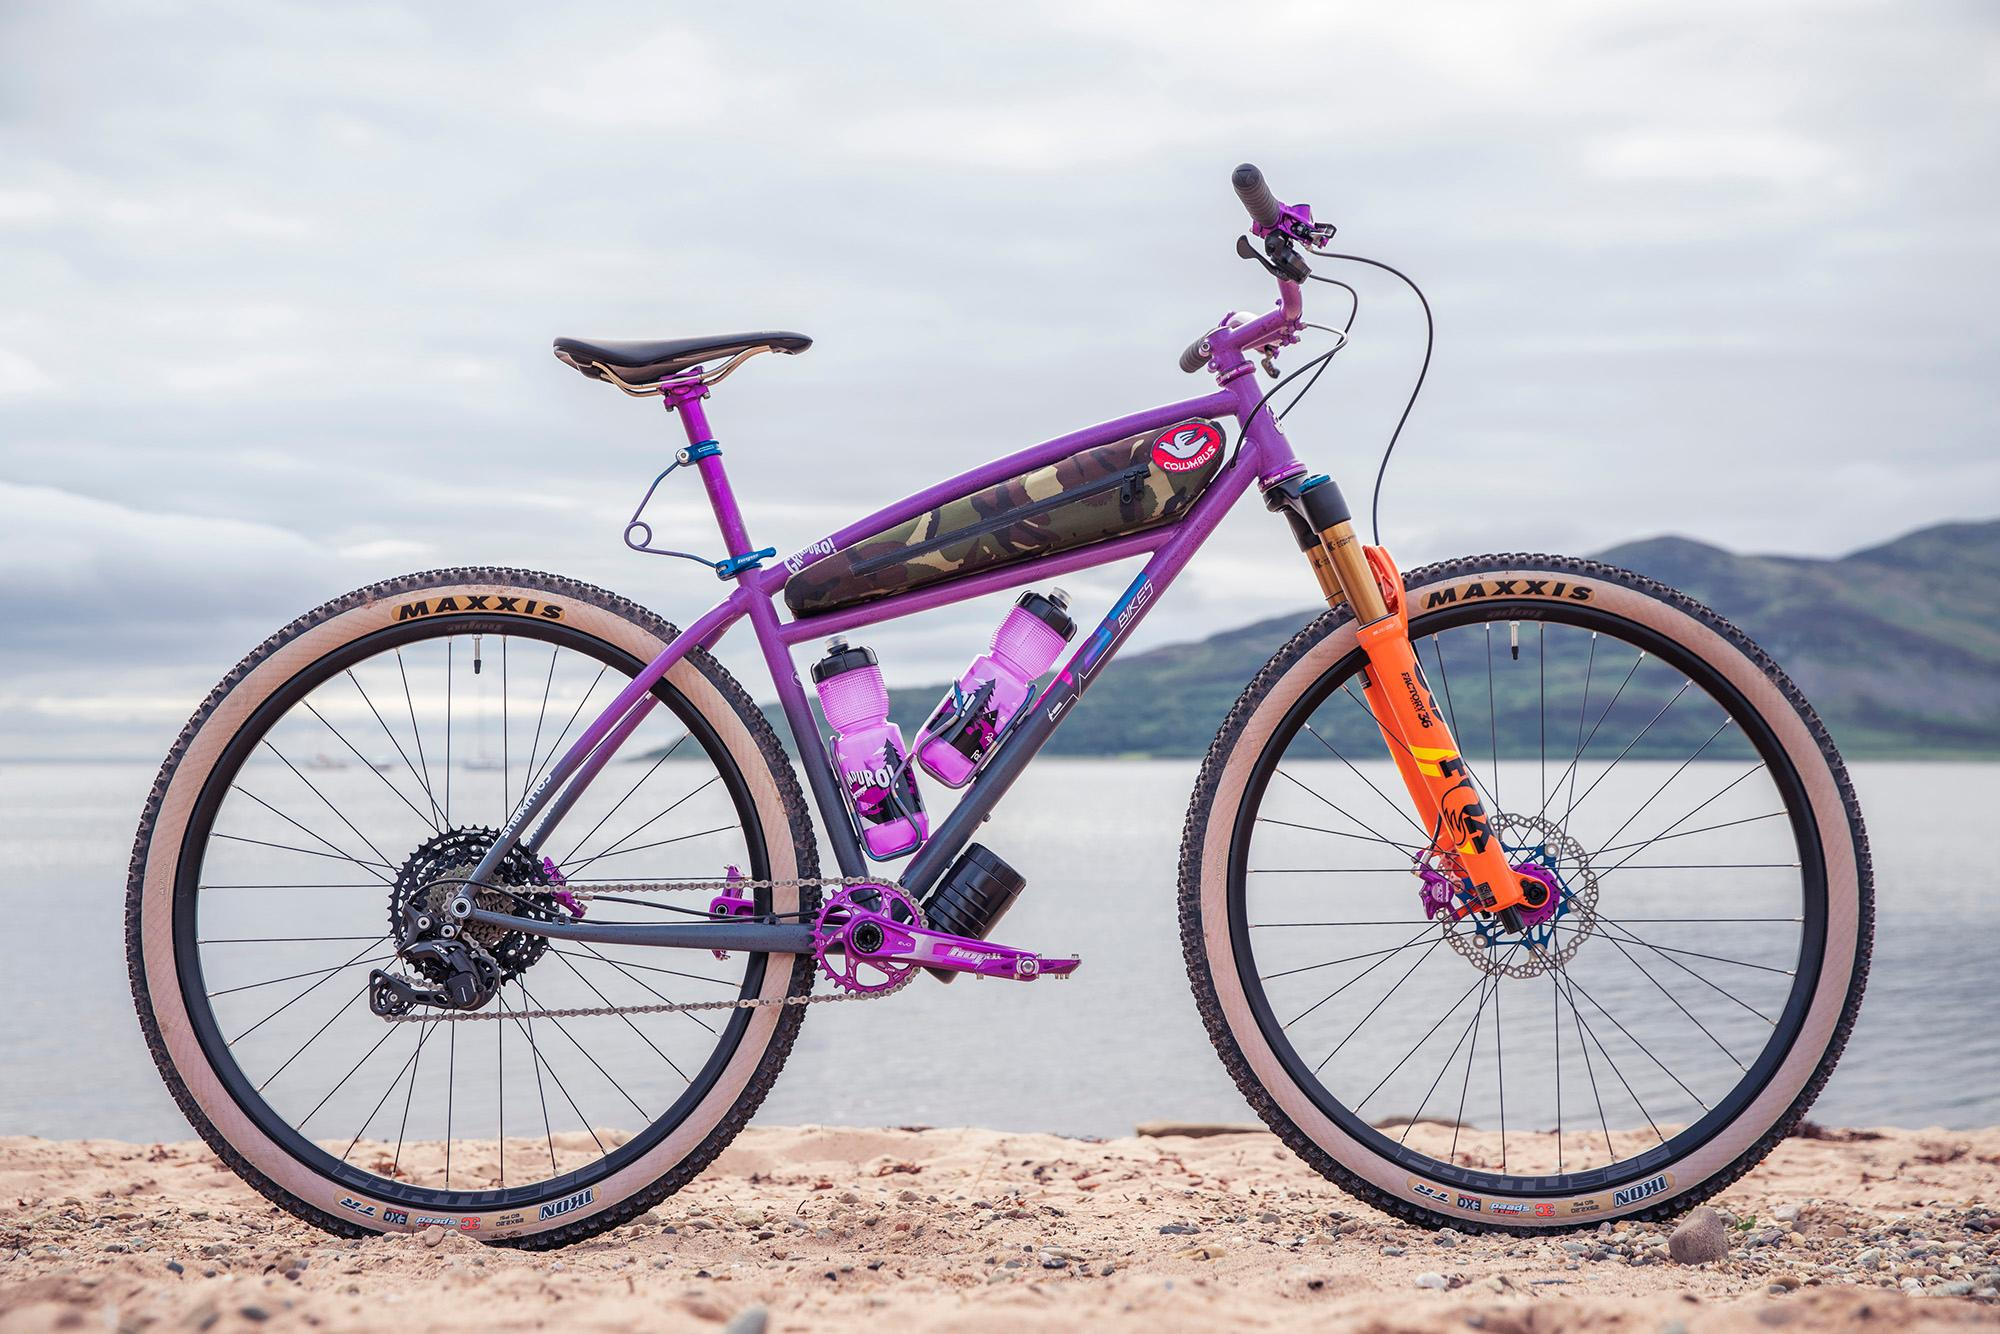 Grinduro custom build by Ted James Design.Grinduro, Isle of Arran, Scotland, 13 July 2019